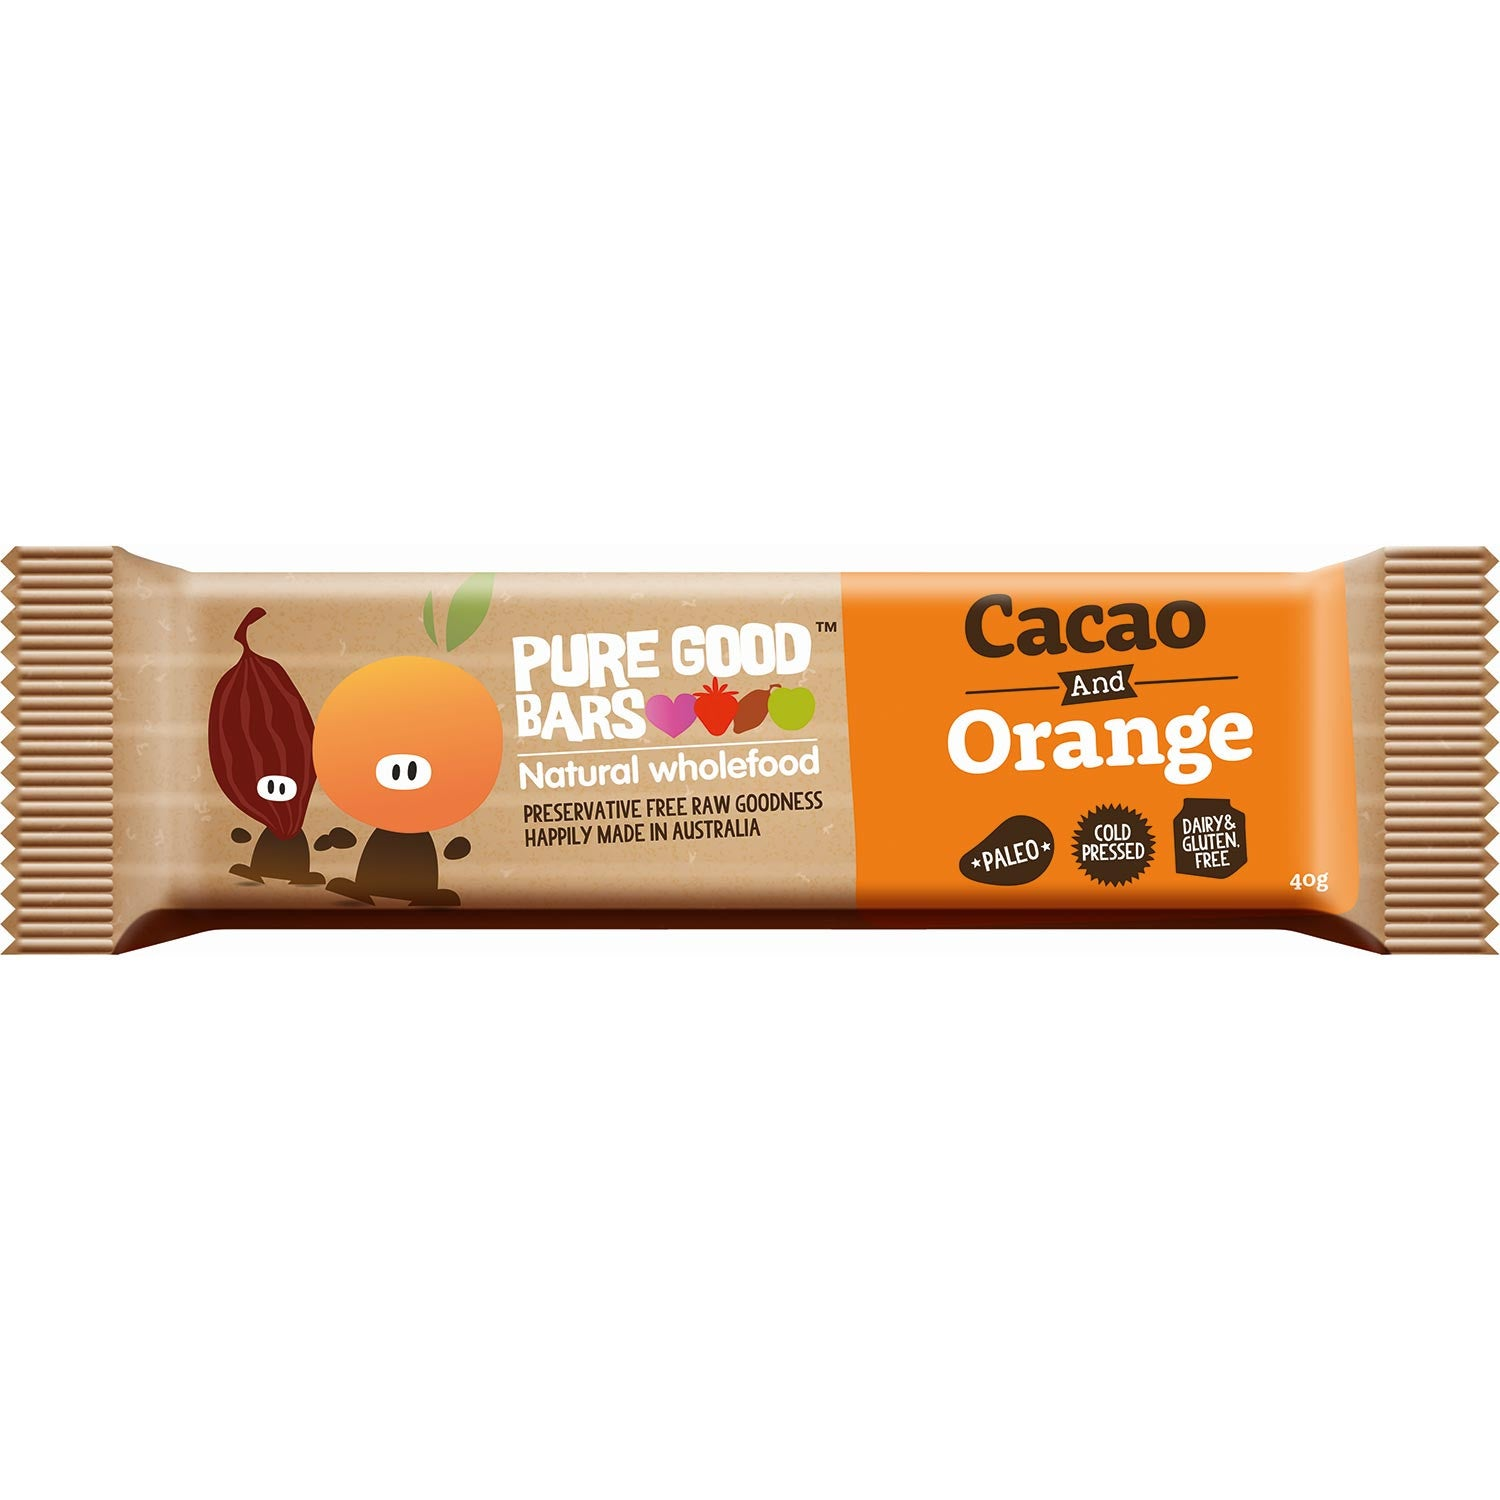 Pure Good Bars -Cocao and Orange, 40g.